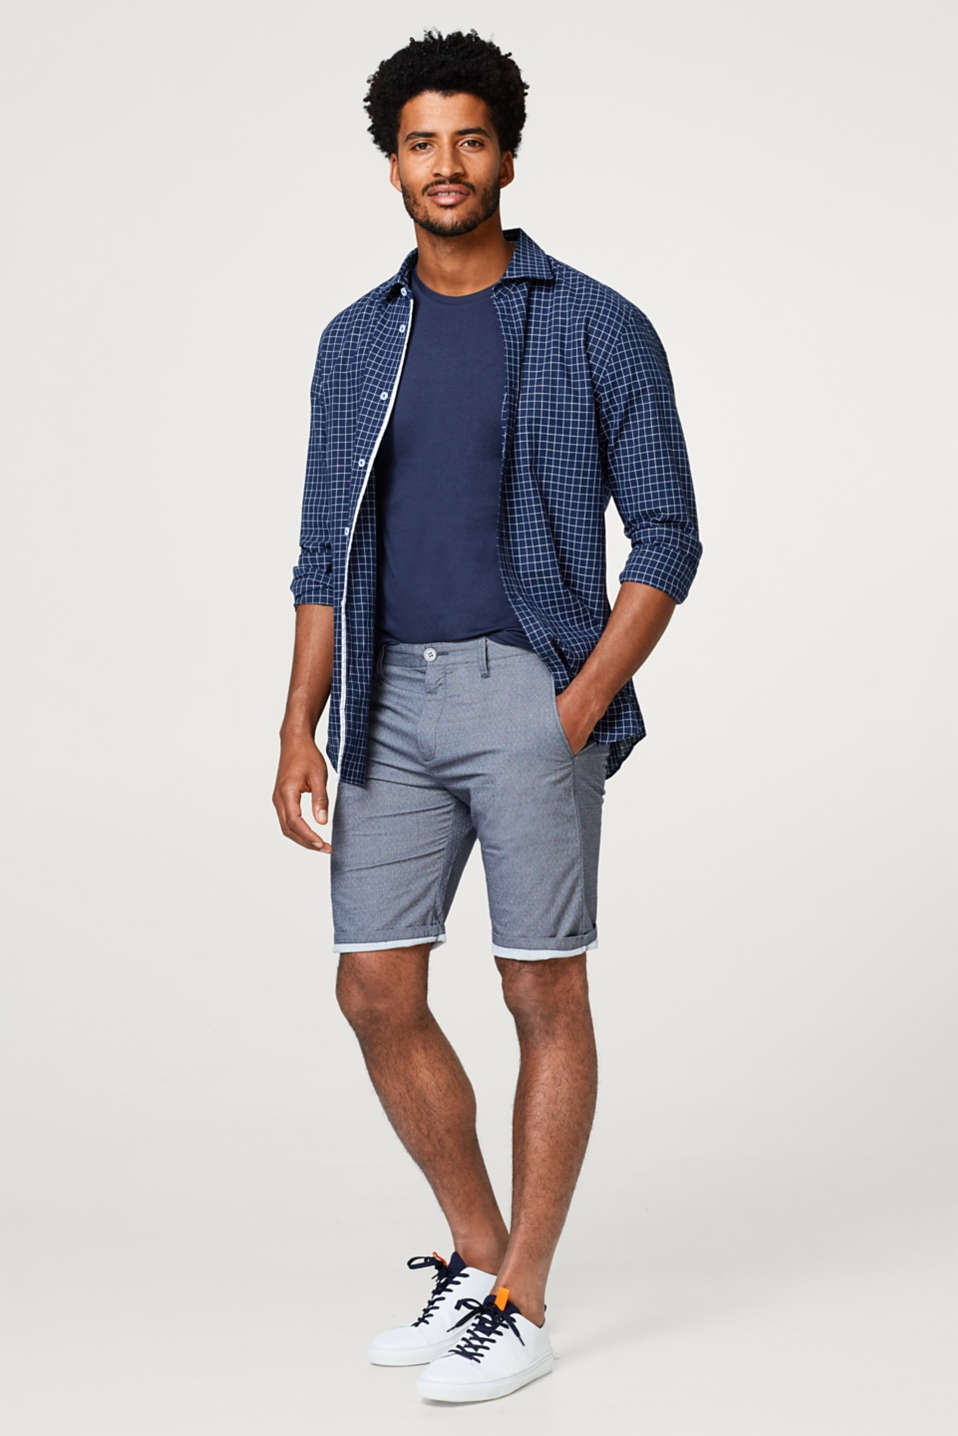 Chino shorts with a fine polka dot pattern